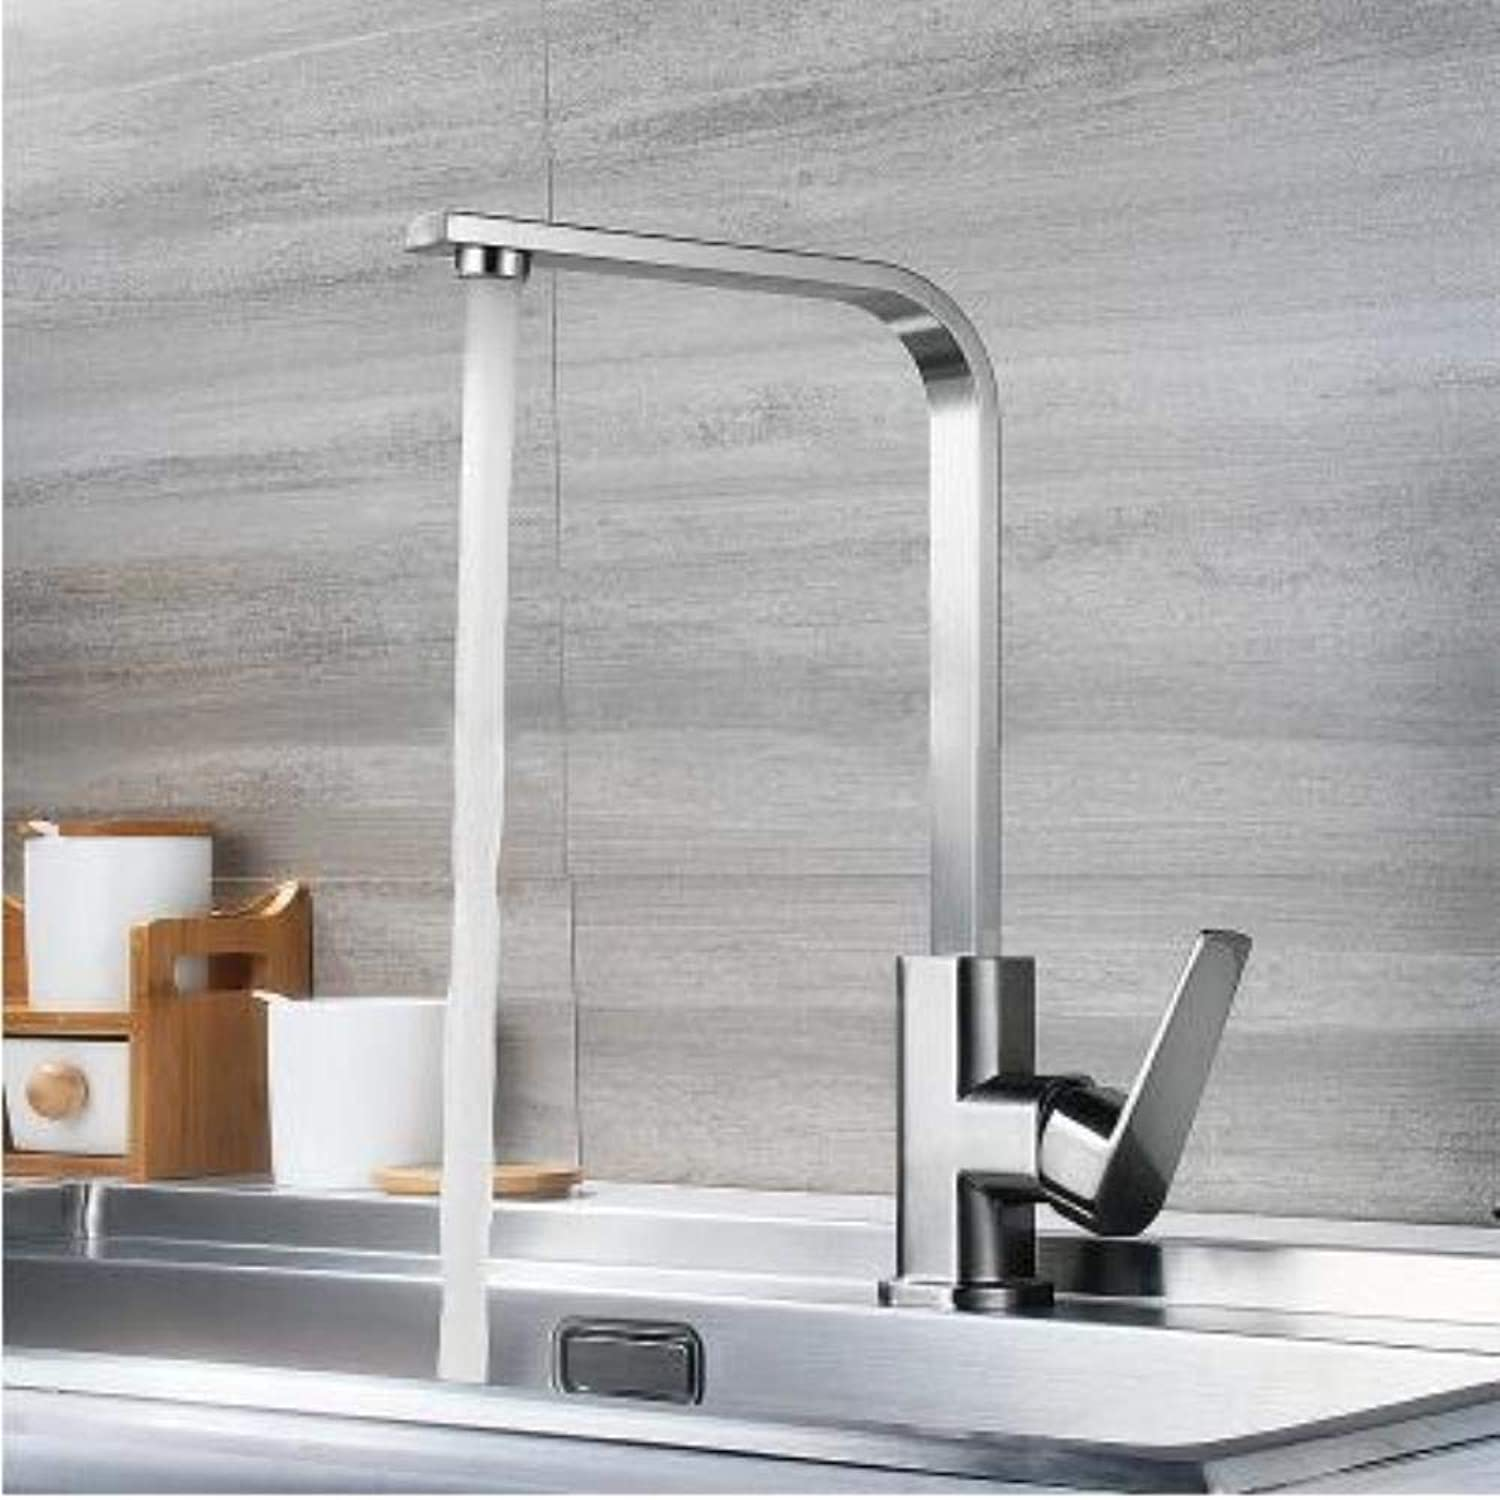 Kai&Guo fashion brass chrome hot and cold single lever hot and cold kitchen sink faucet,nickel brushed